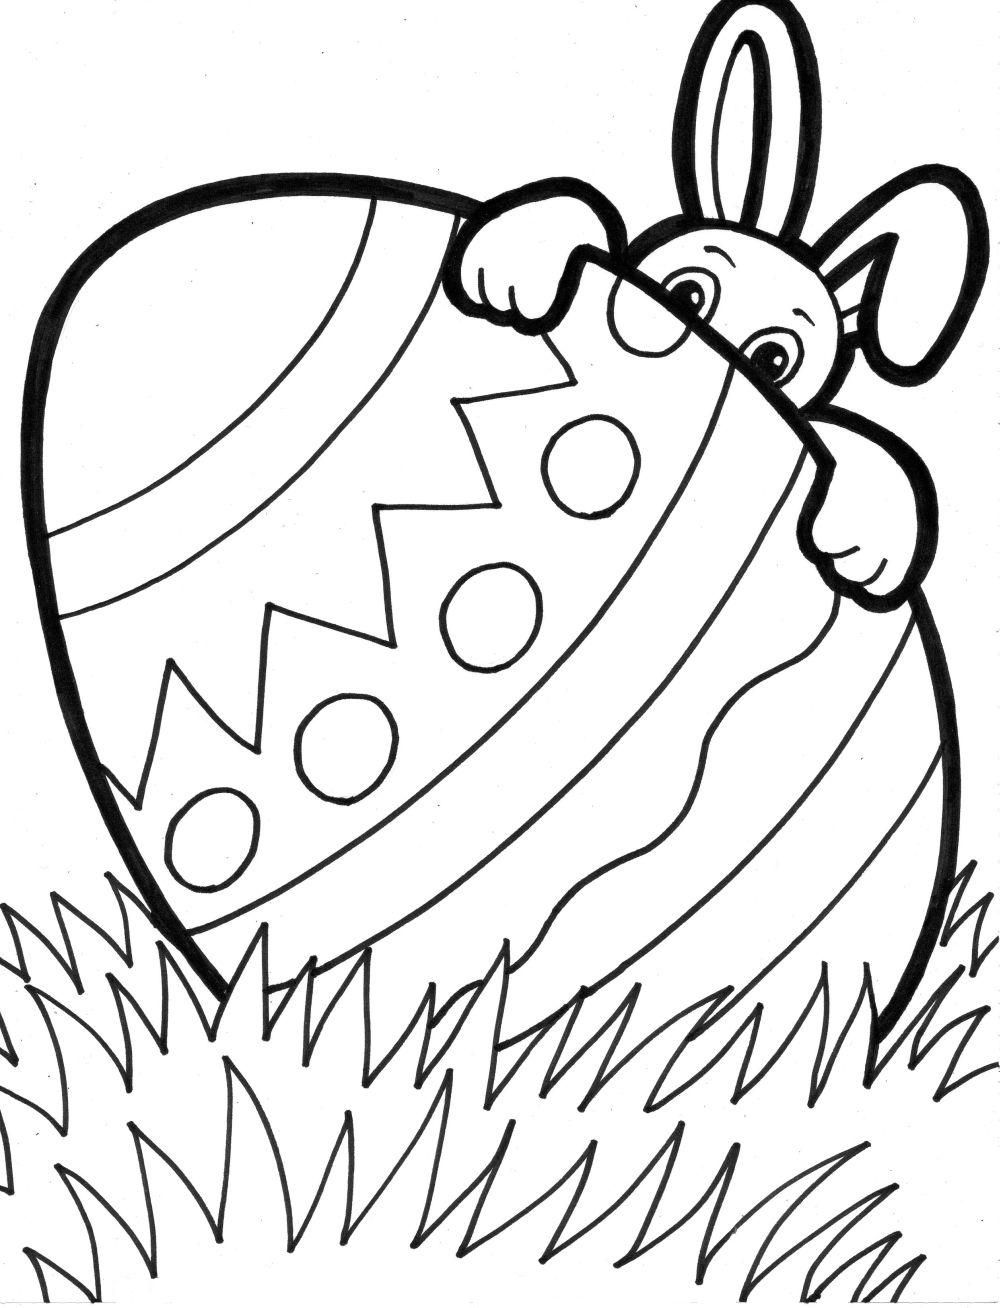 Coloring sheet for toddlers - 16 Super Cute And Free Easter Printable Coloring Pages For Kids